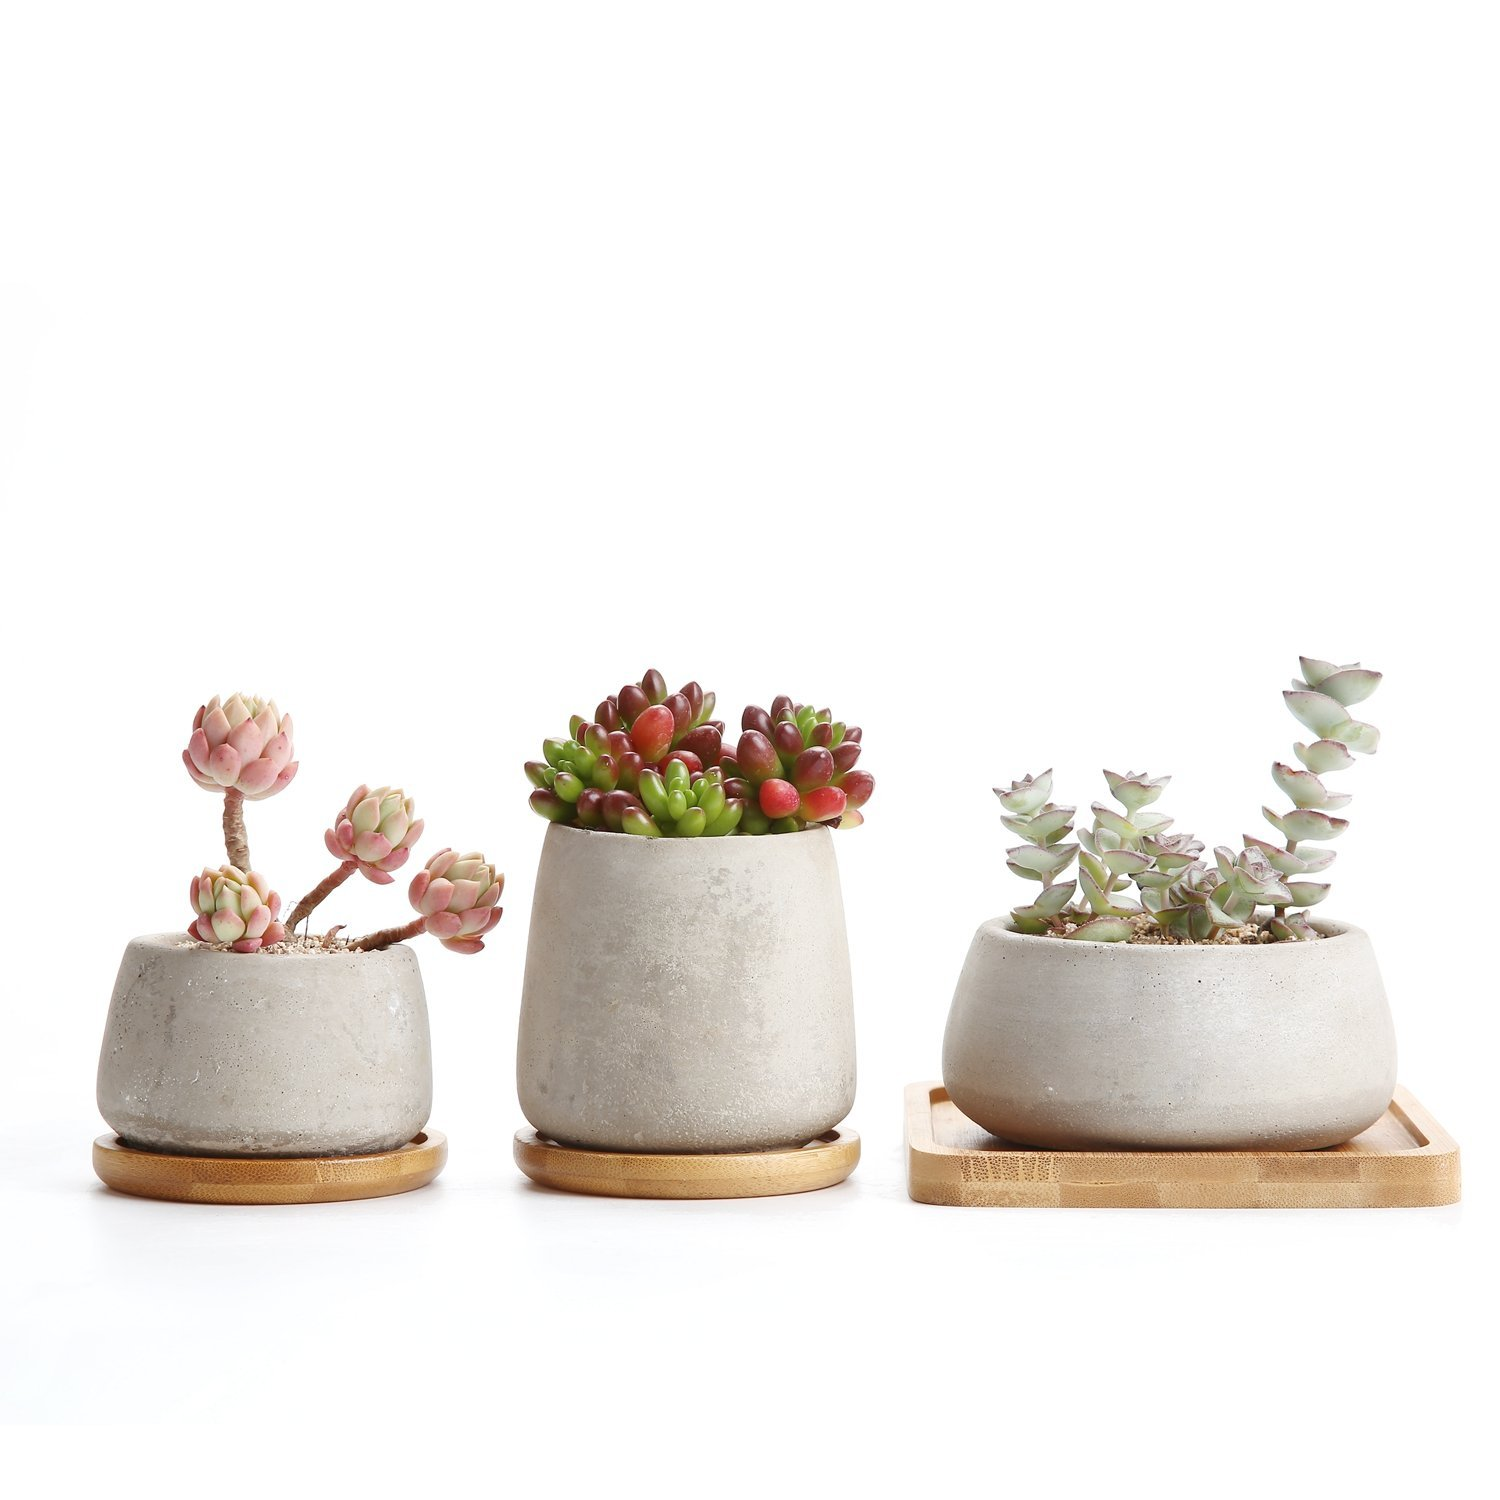 T4U 2.5-3.5 Inch Cement Serial Sets Sucuulent Cactus Plant Pots Flower Pots Planters Containers Window Boxes With Bamboo Tray Grey - Pack of 3